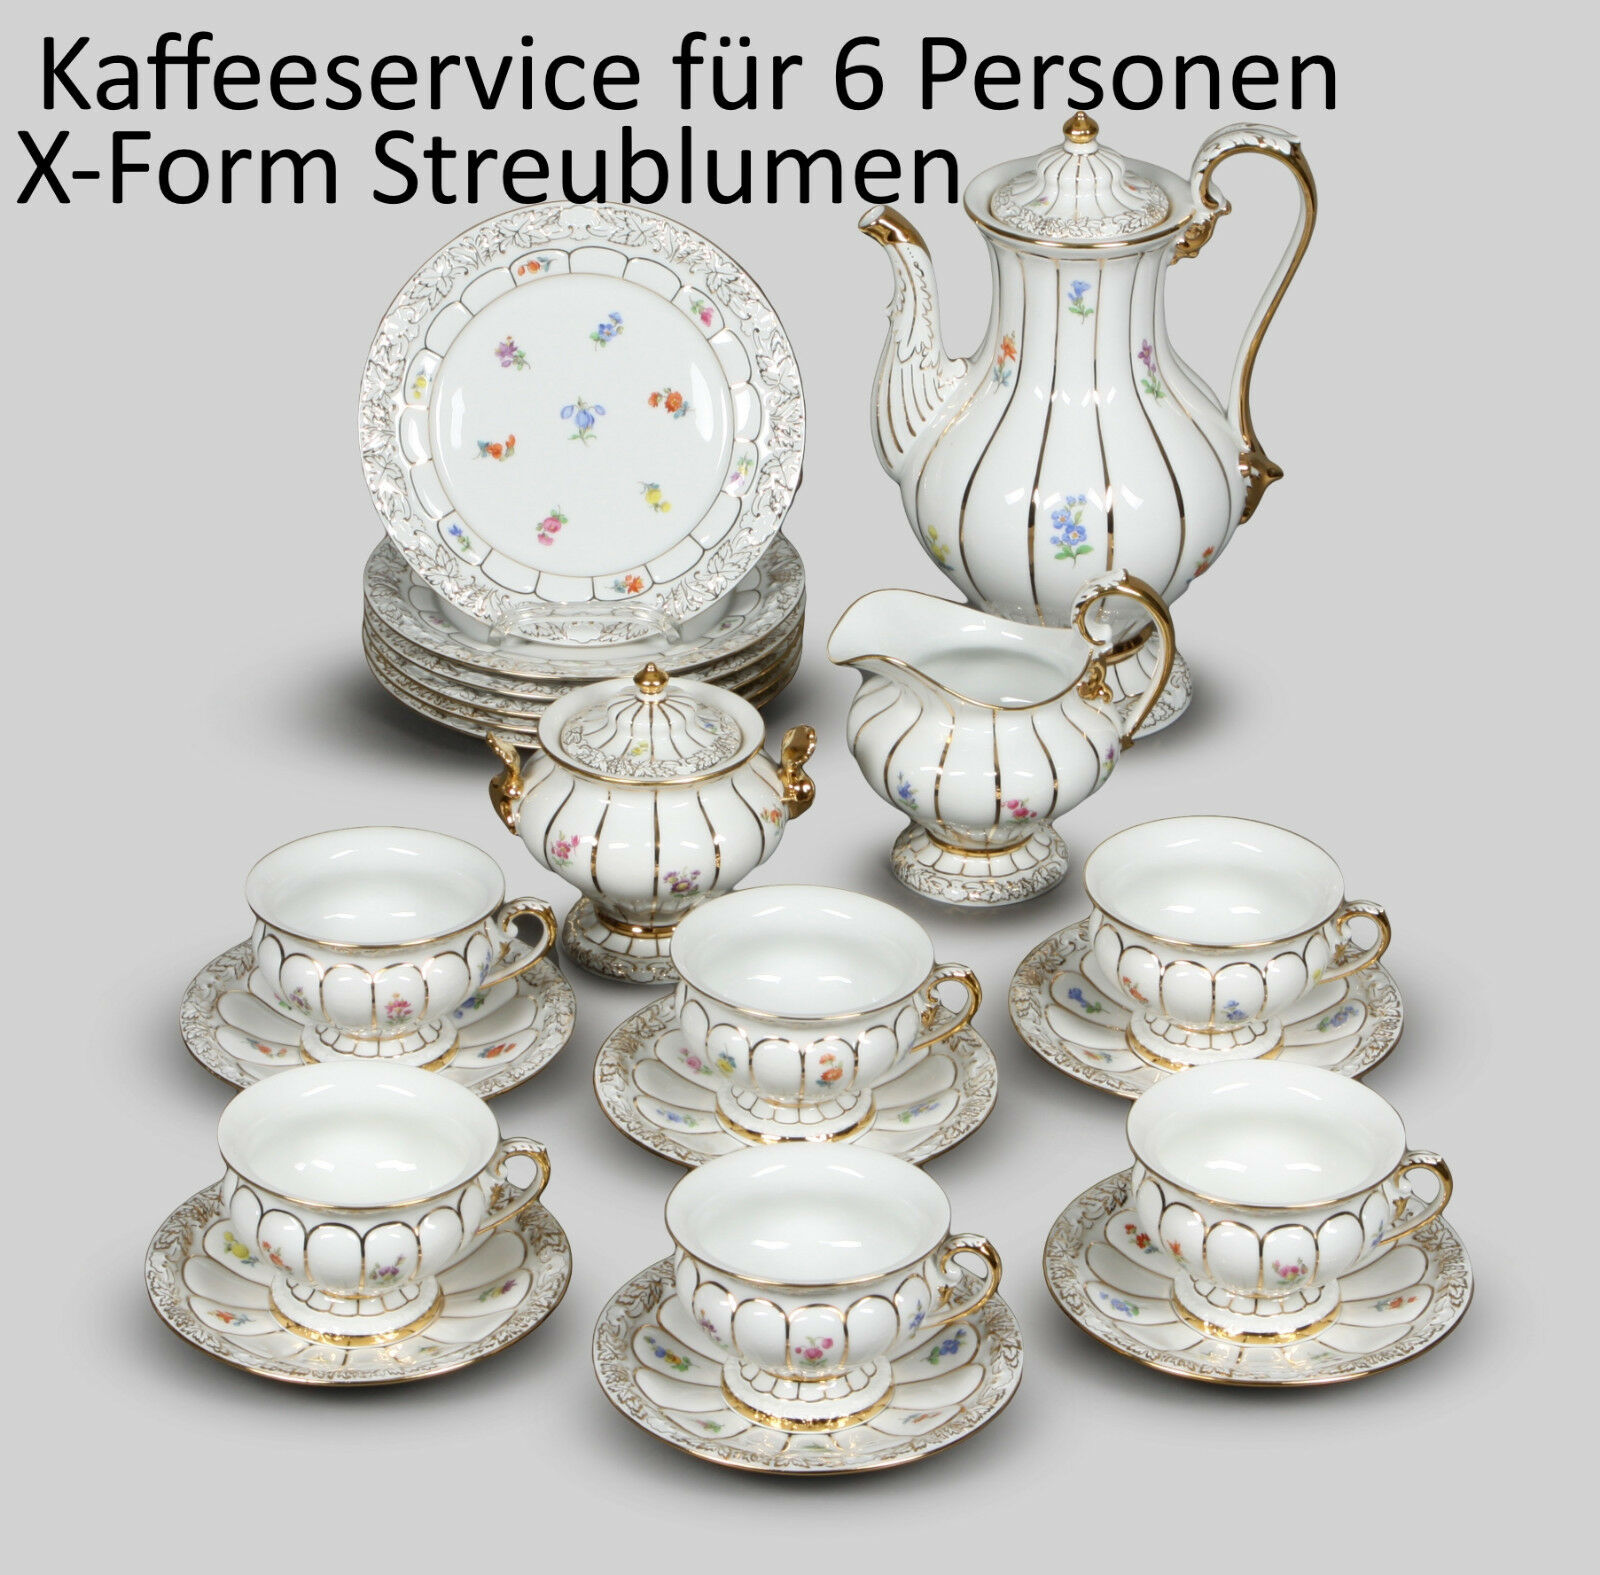 kaffeeservice x form streublumen f r 6 personen 21tlg meissen 2 wahl top eur. Black Bedroom Furniture Sets. Home Design Ideas